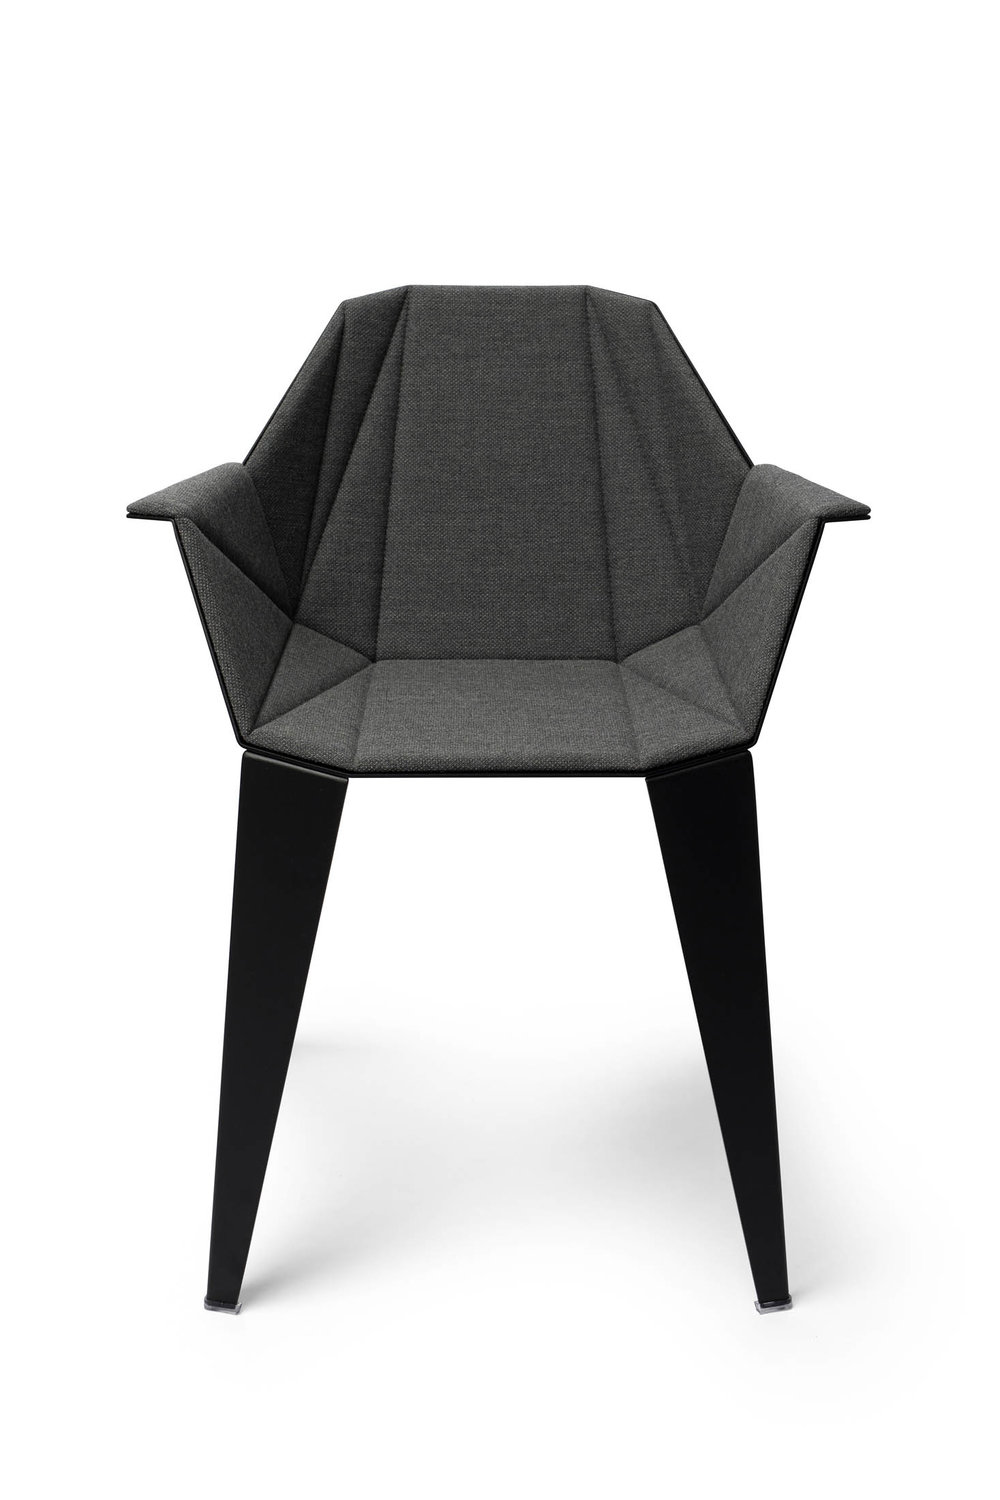 alumni-alpha-black-grey- upholstered-front.jpg